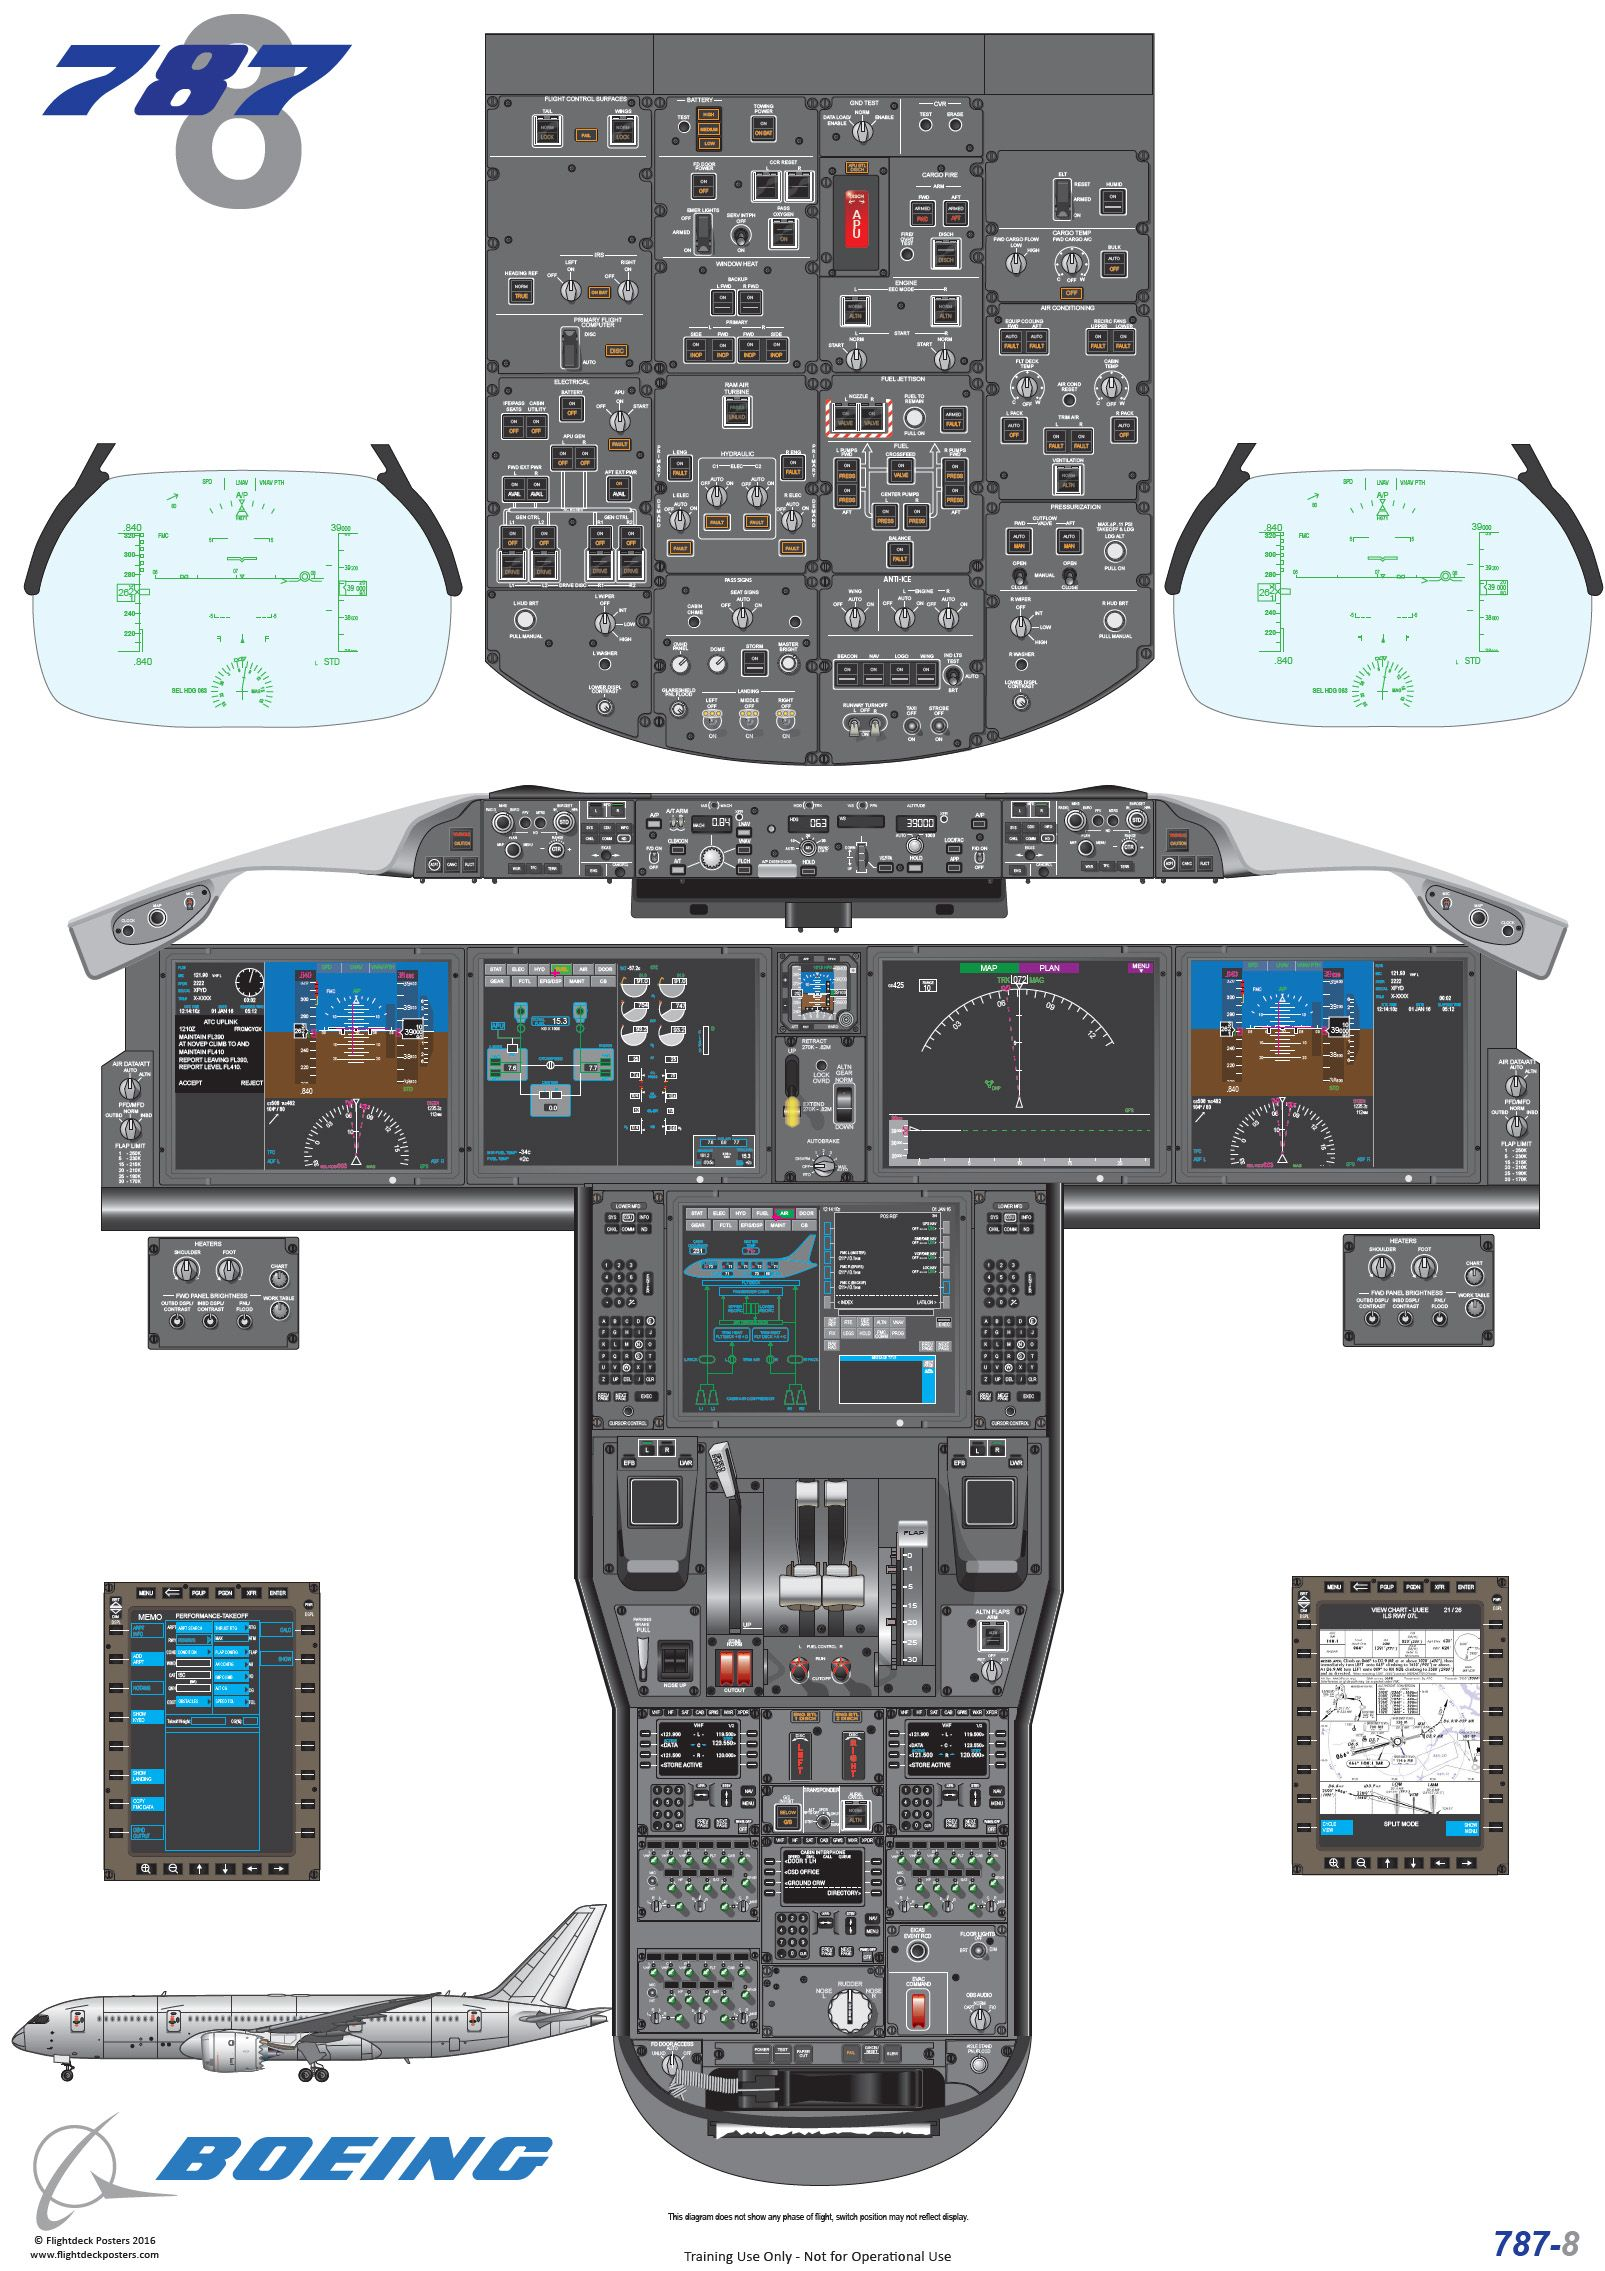 Paper Airplane Diagram Of Parts 2008 Gmc Acadia Radio Wiring Best Flight Simulator Cockpits   Aviation - Commercial Transport Category Aircraft Pinterest ...